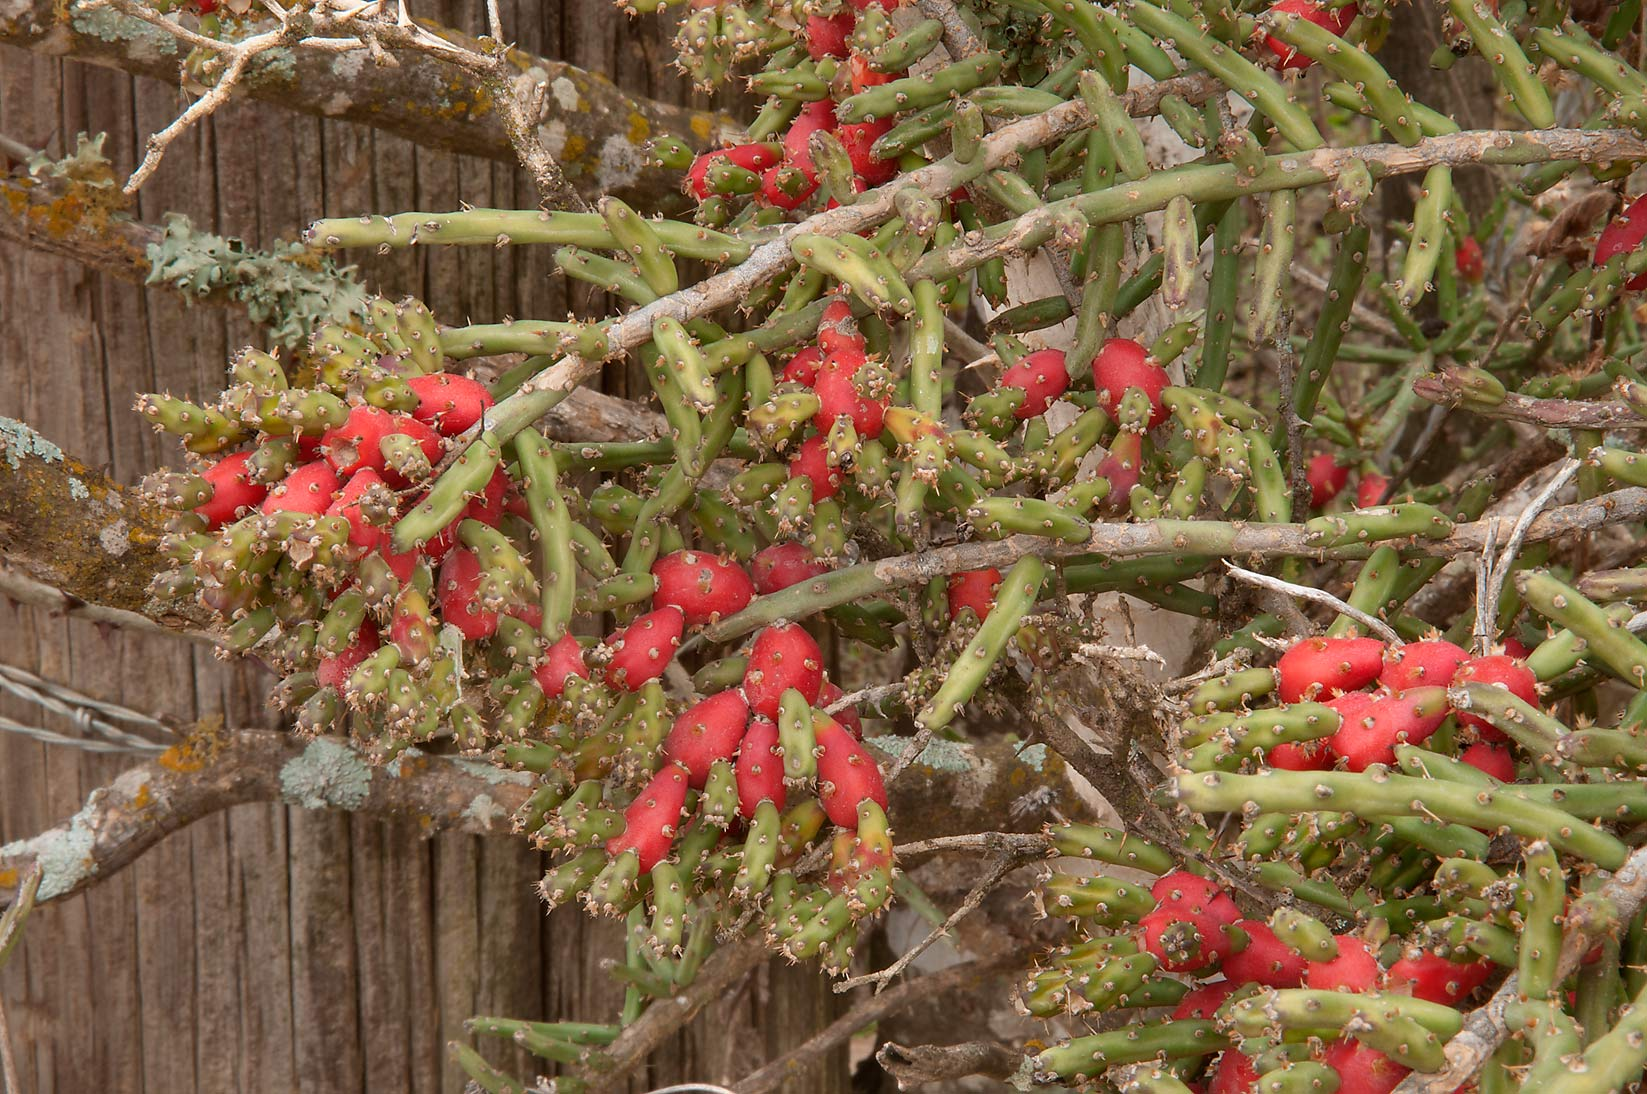 Christmas cactus (Tasajillo, Cylindropuntia...at Rd. 322 south from Milano. Texas